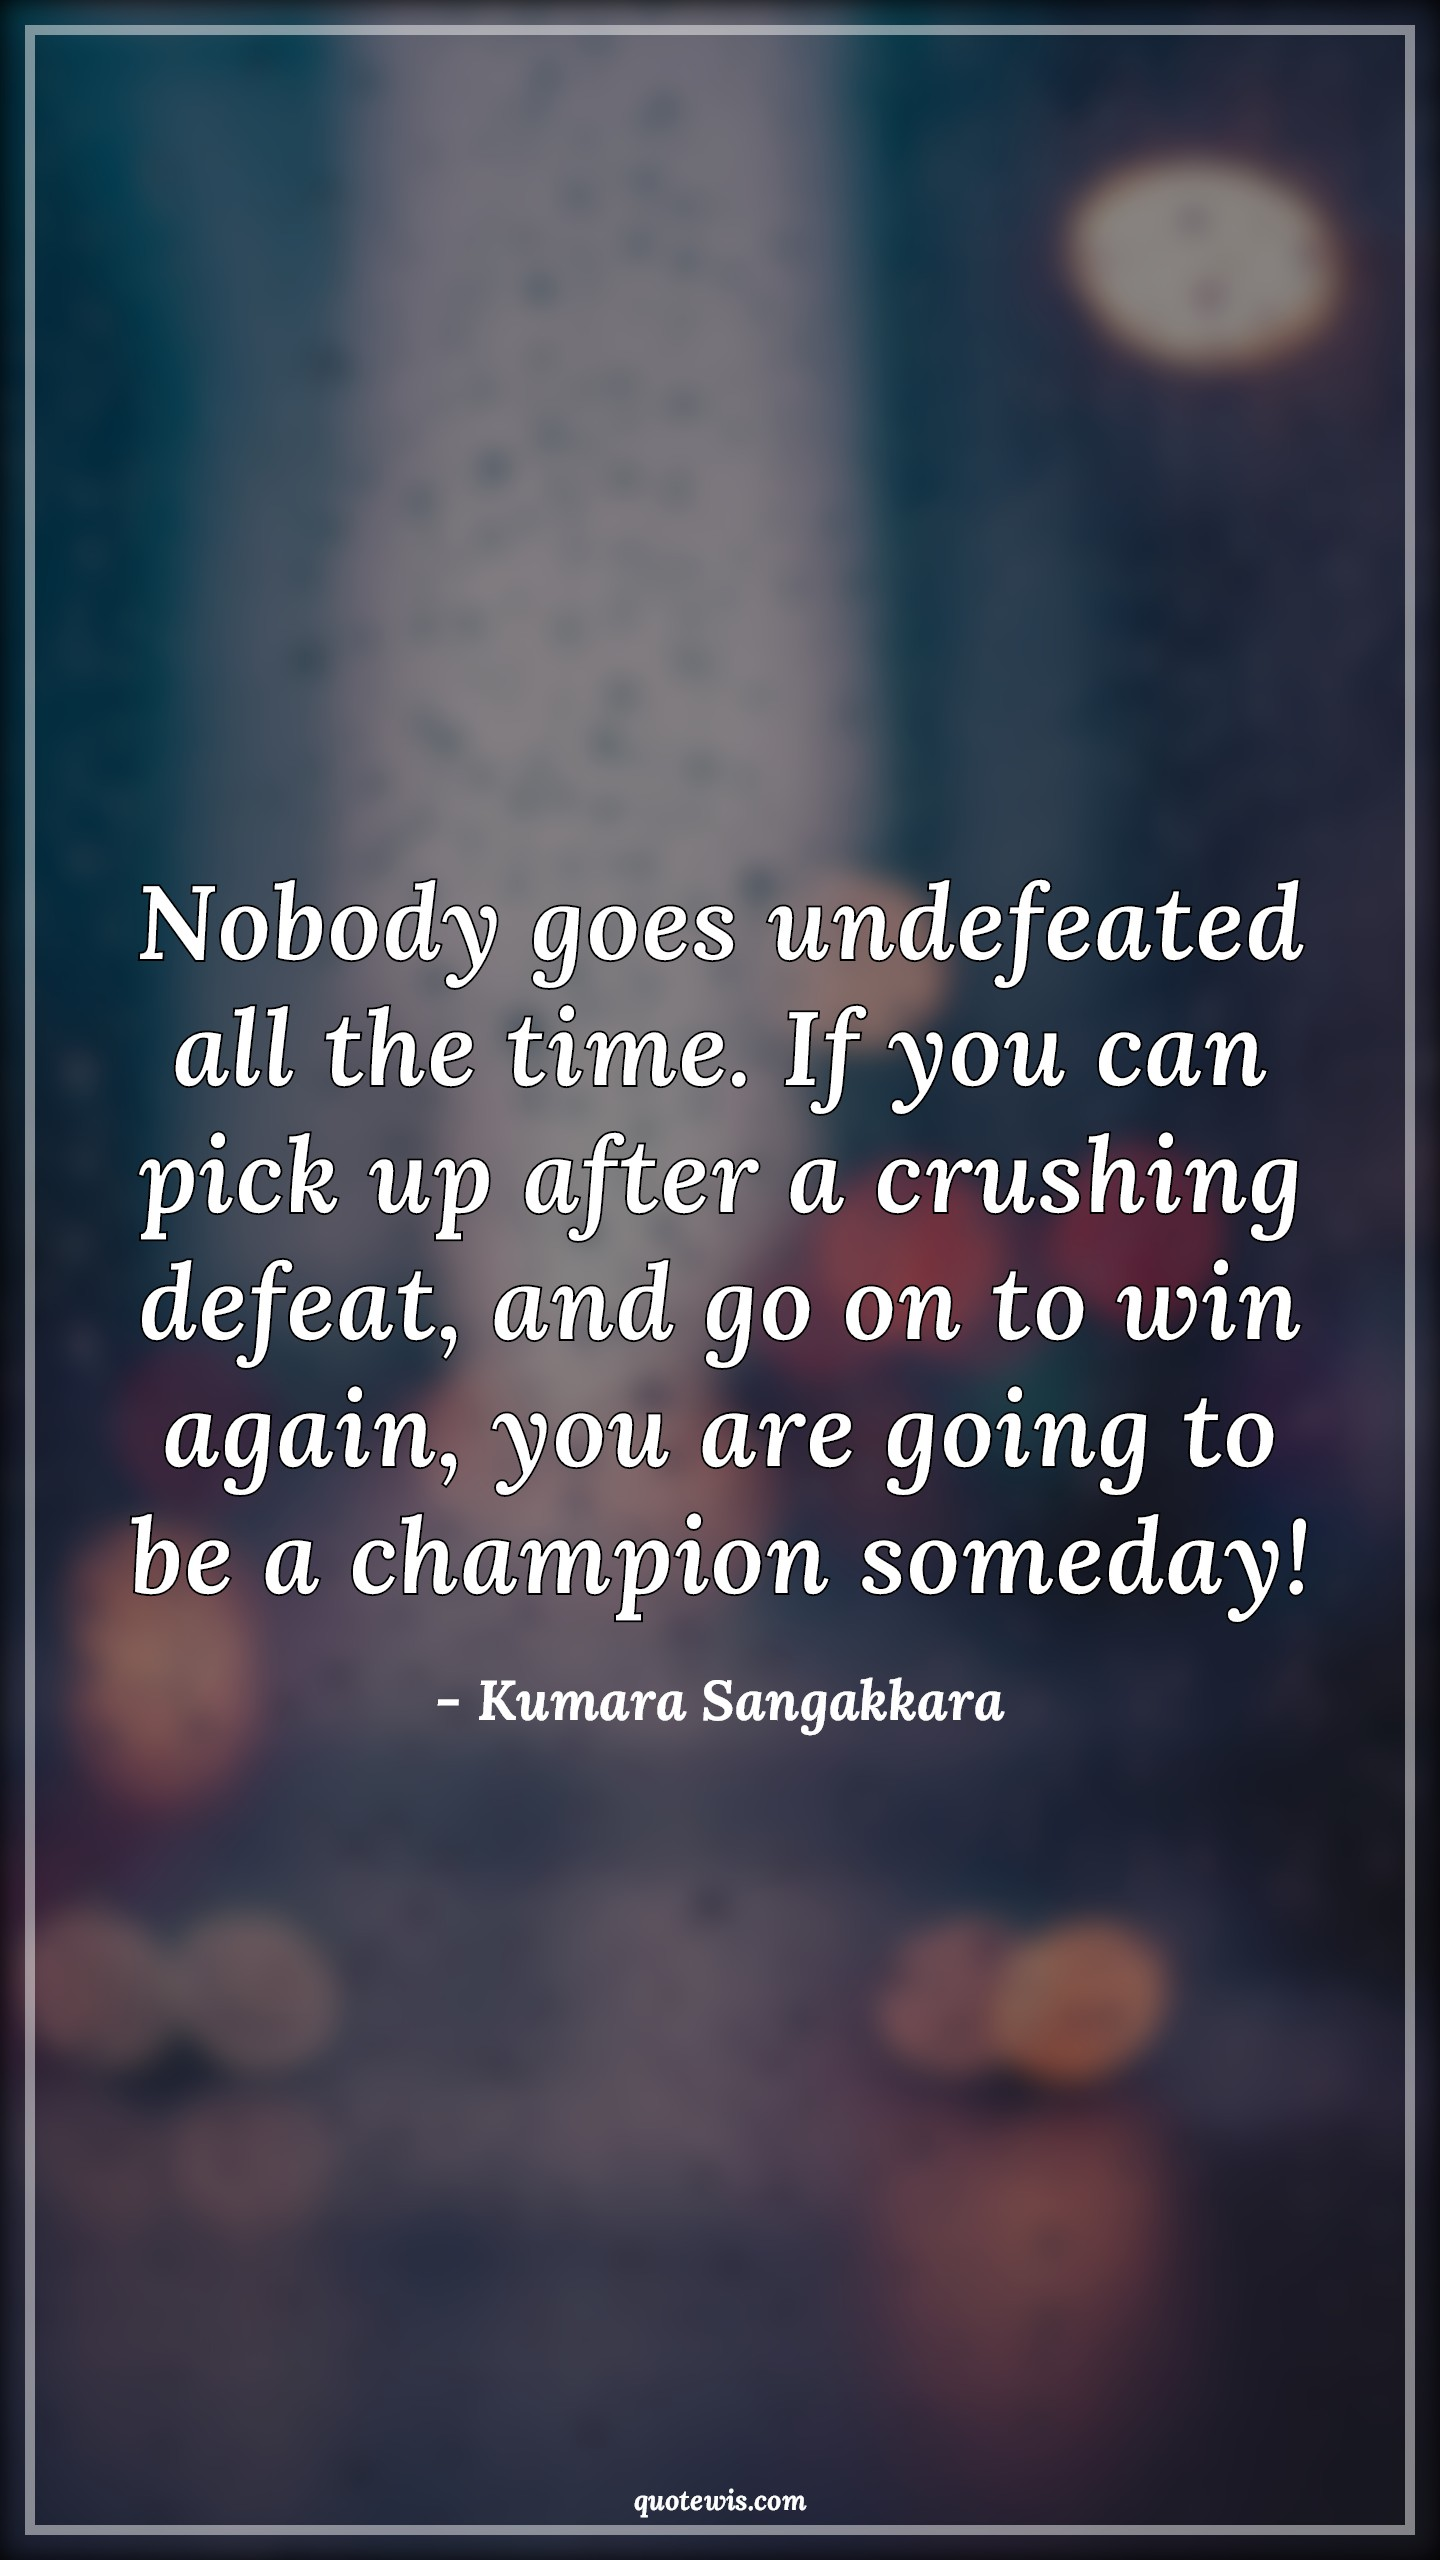 Nobody goes undefeated all the time. If you can pick up after a crushing defeat, and go on to win again, you are going to be a champion someday!